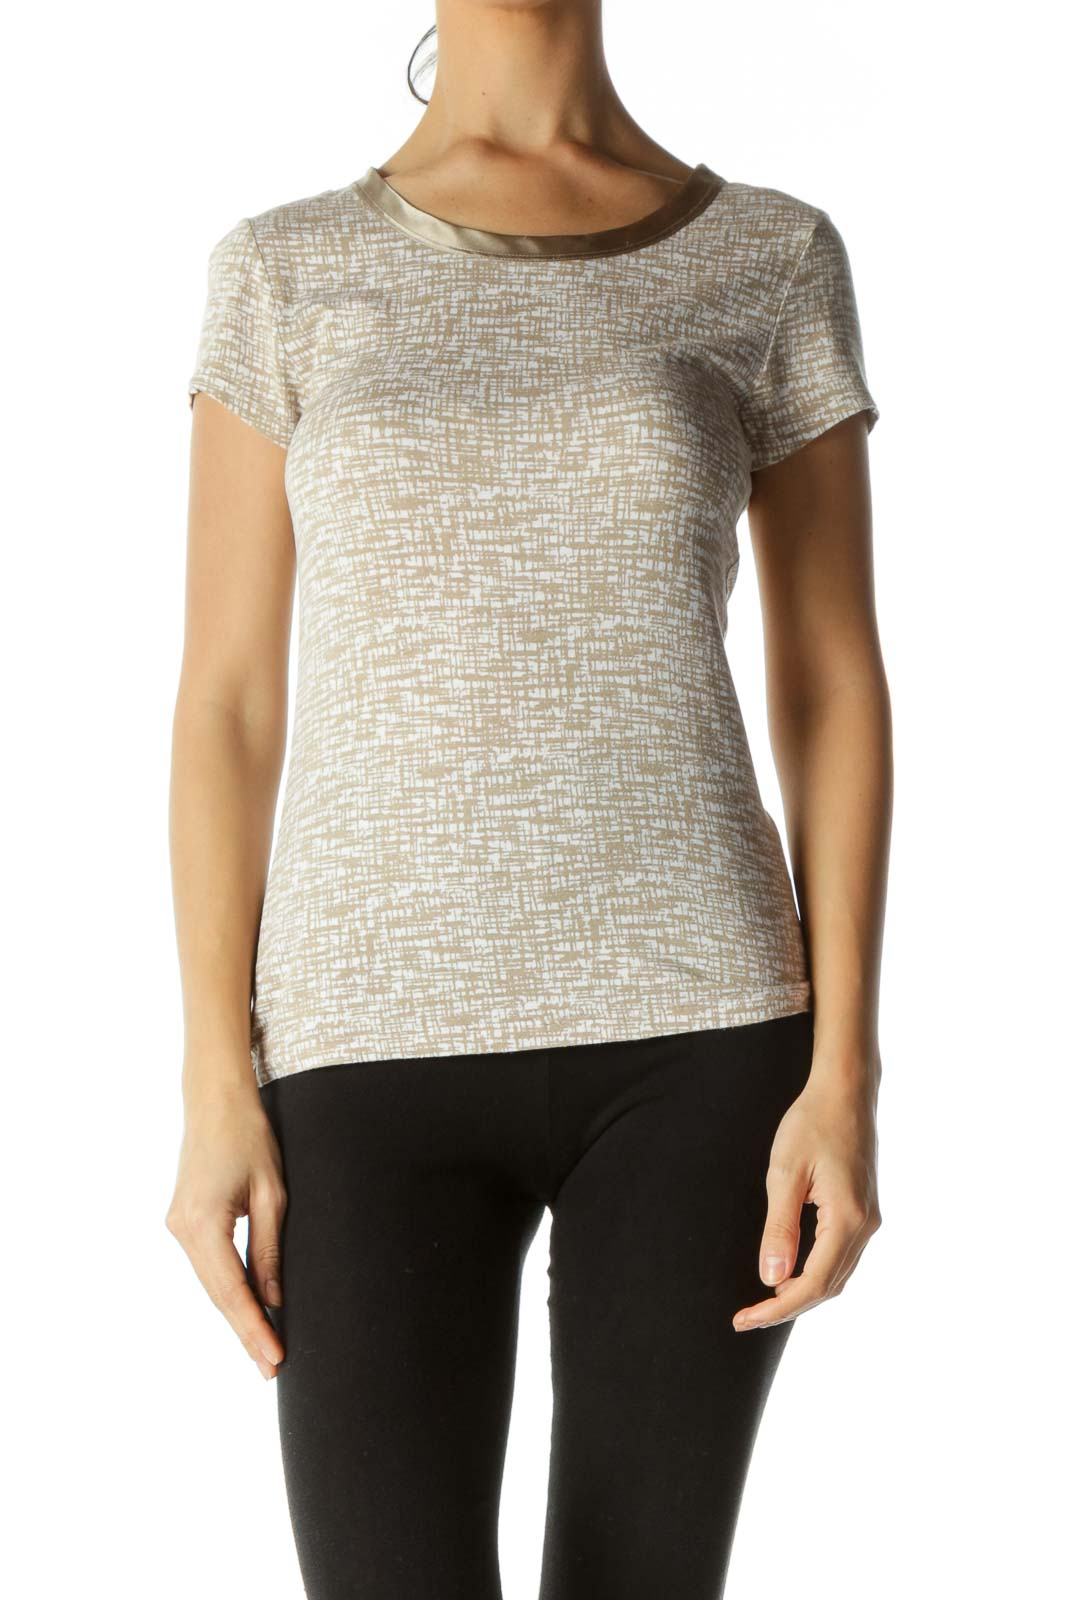 Brown Patterned Gold Collar T-shirt